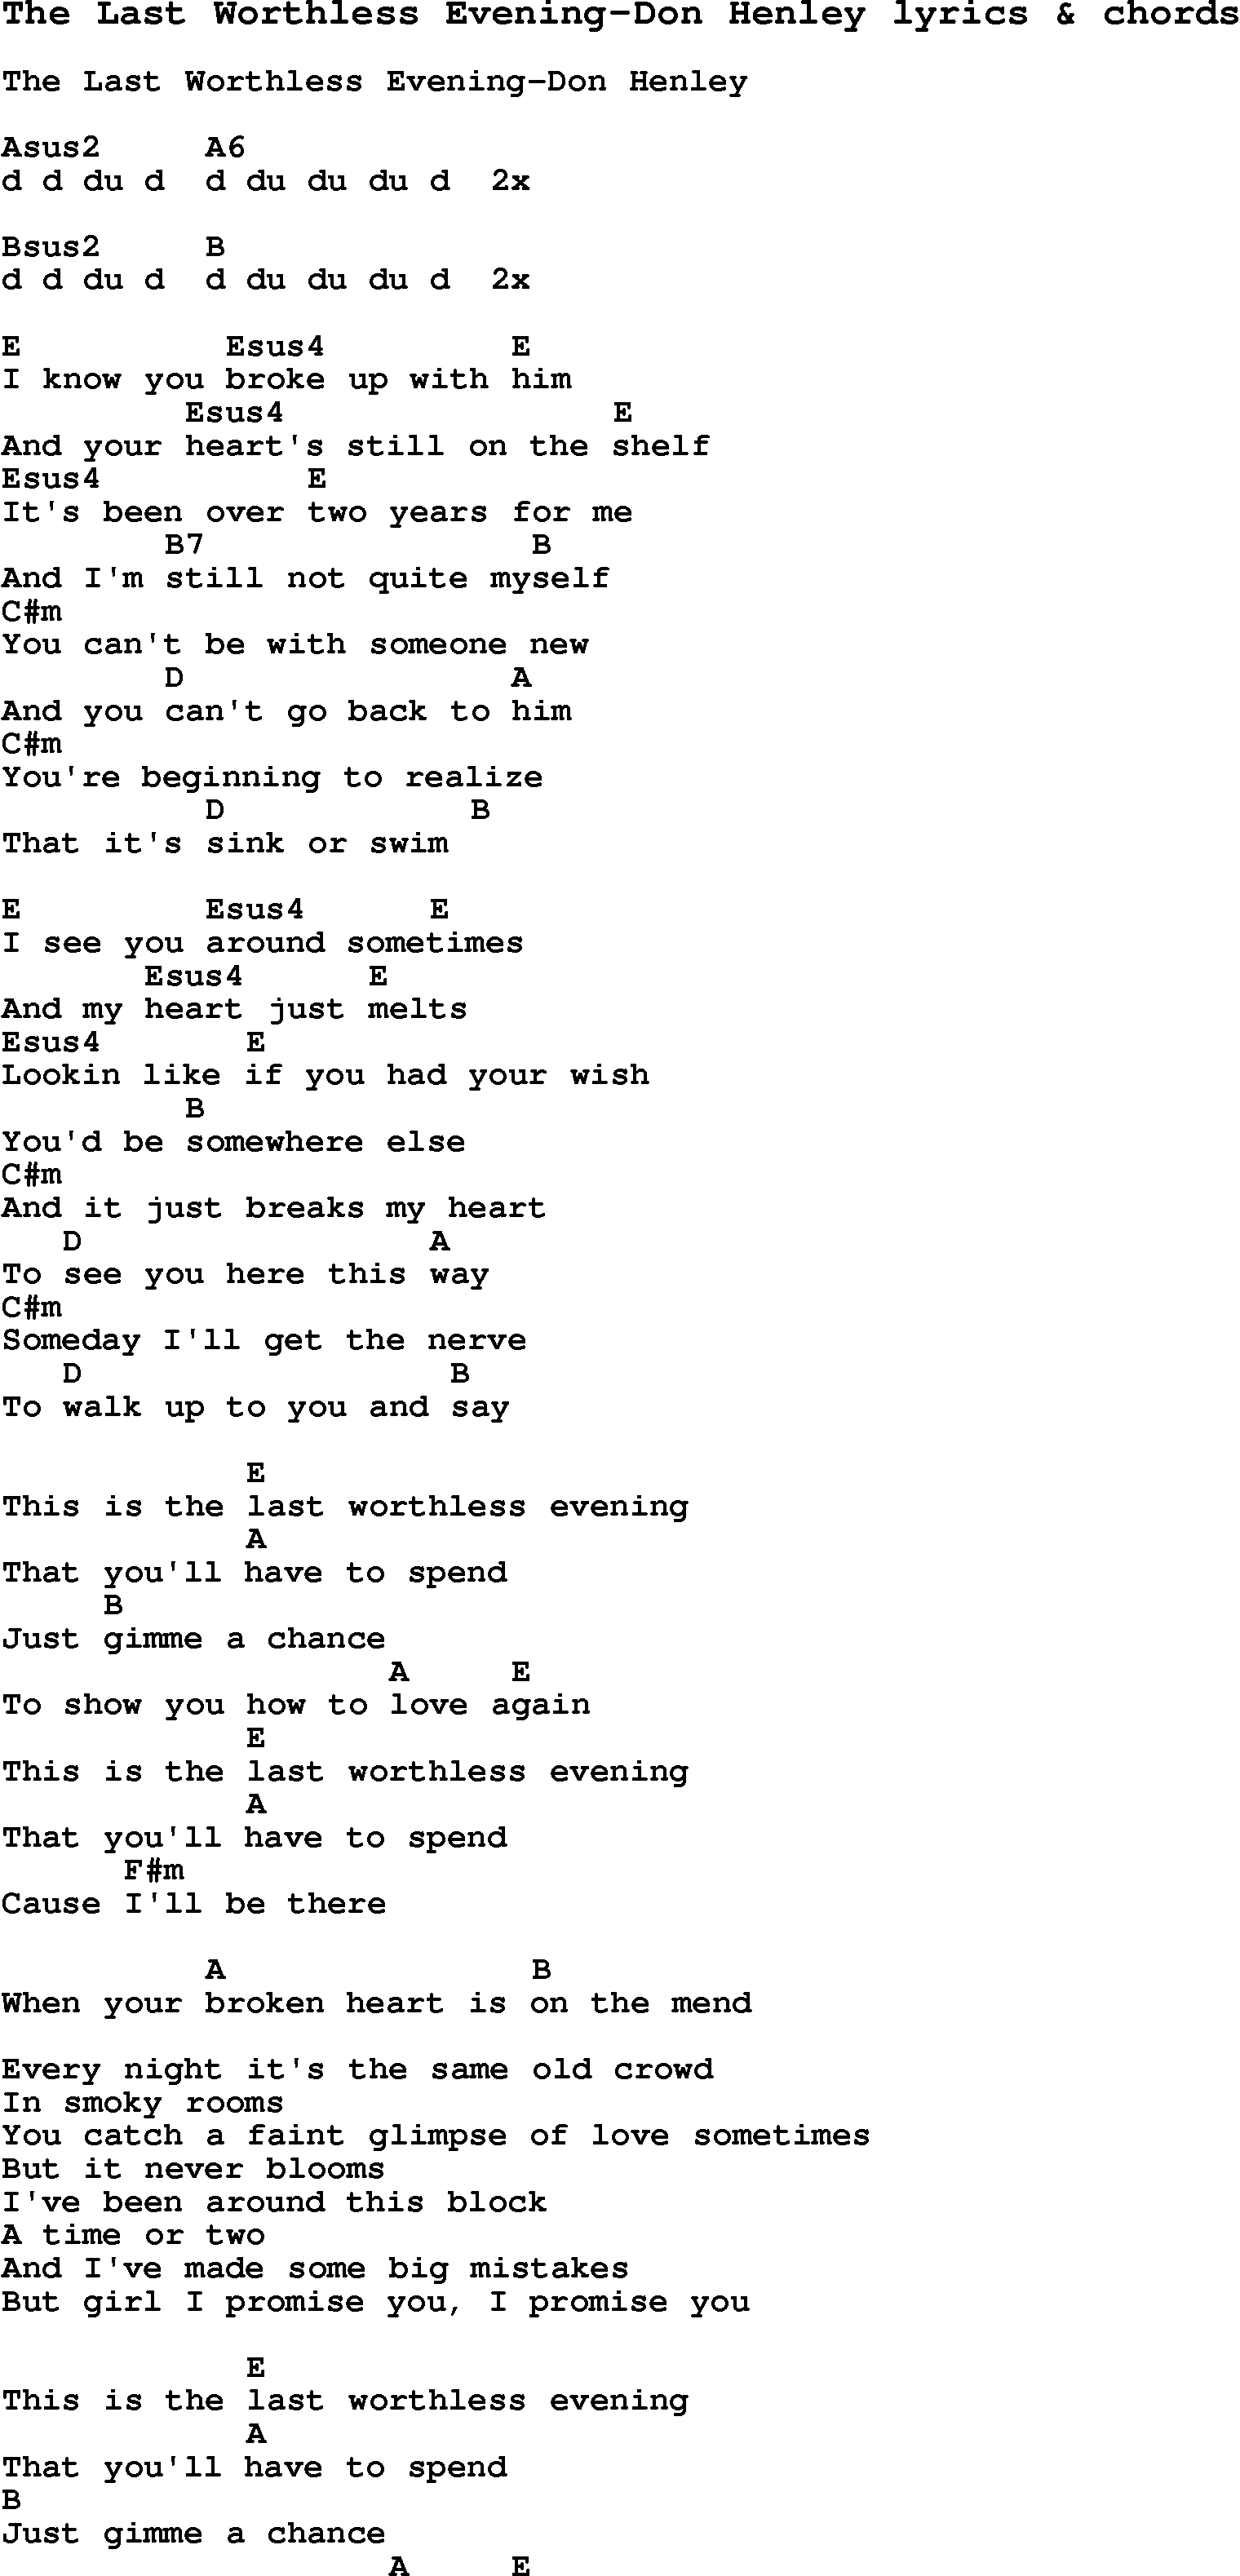 Just an old fashioned love song chords 39